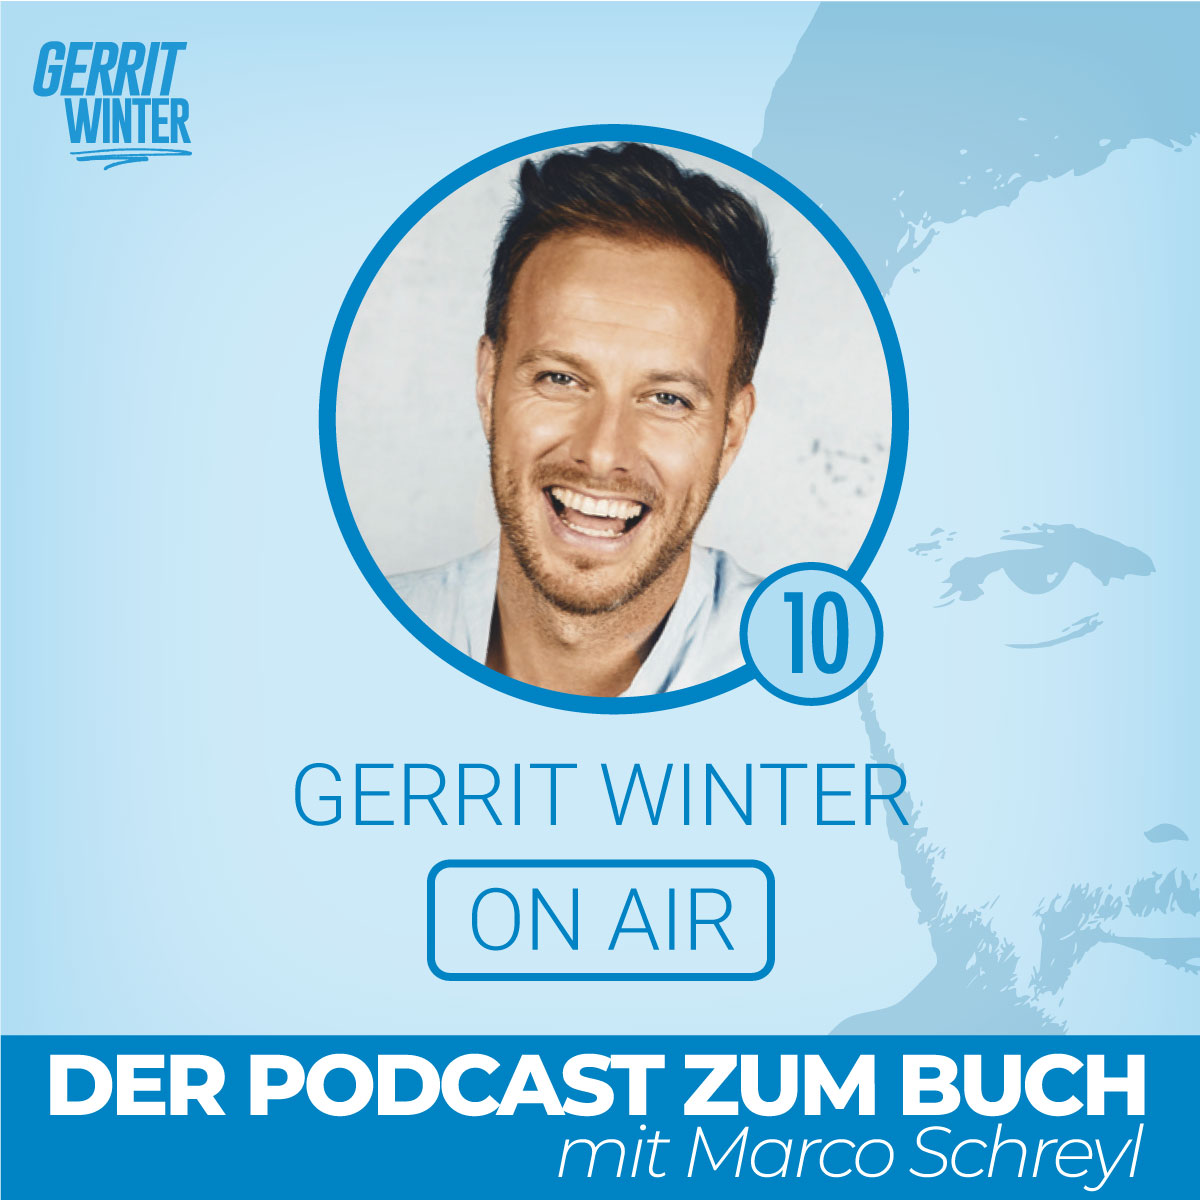 Marco Schreyl im Podcast mit Gerrit Winter - Gerrit Winter On Aur